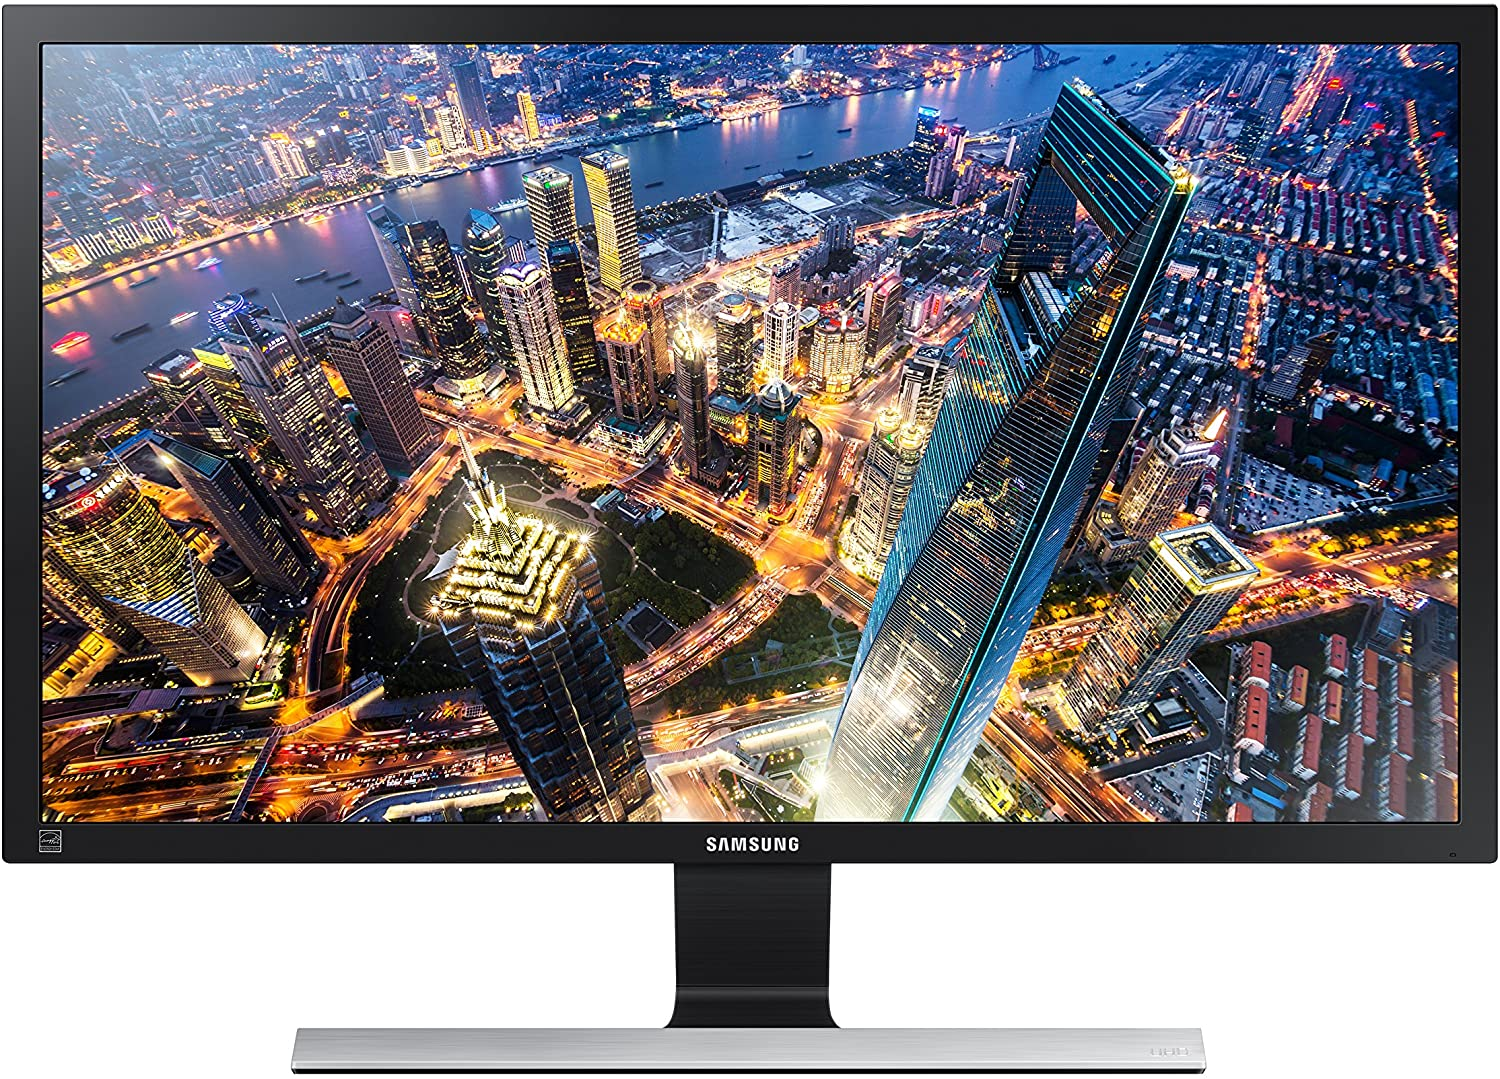 4K UltraHD Samsung UE570 60hz Gaming Monitor with FreeSync Technology is now $399